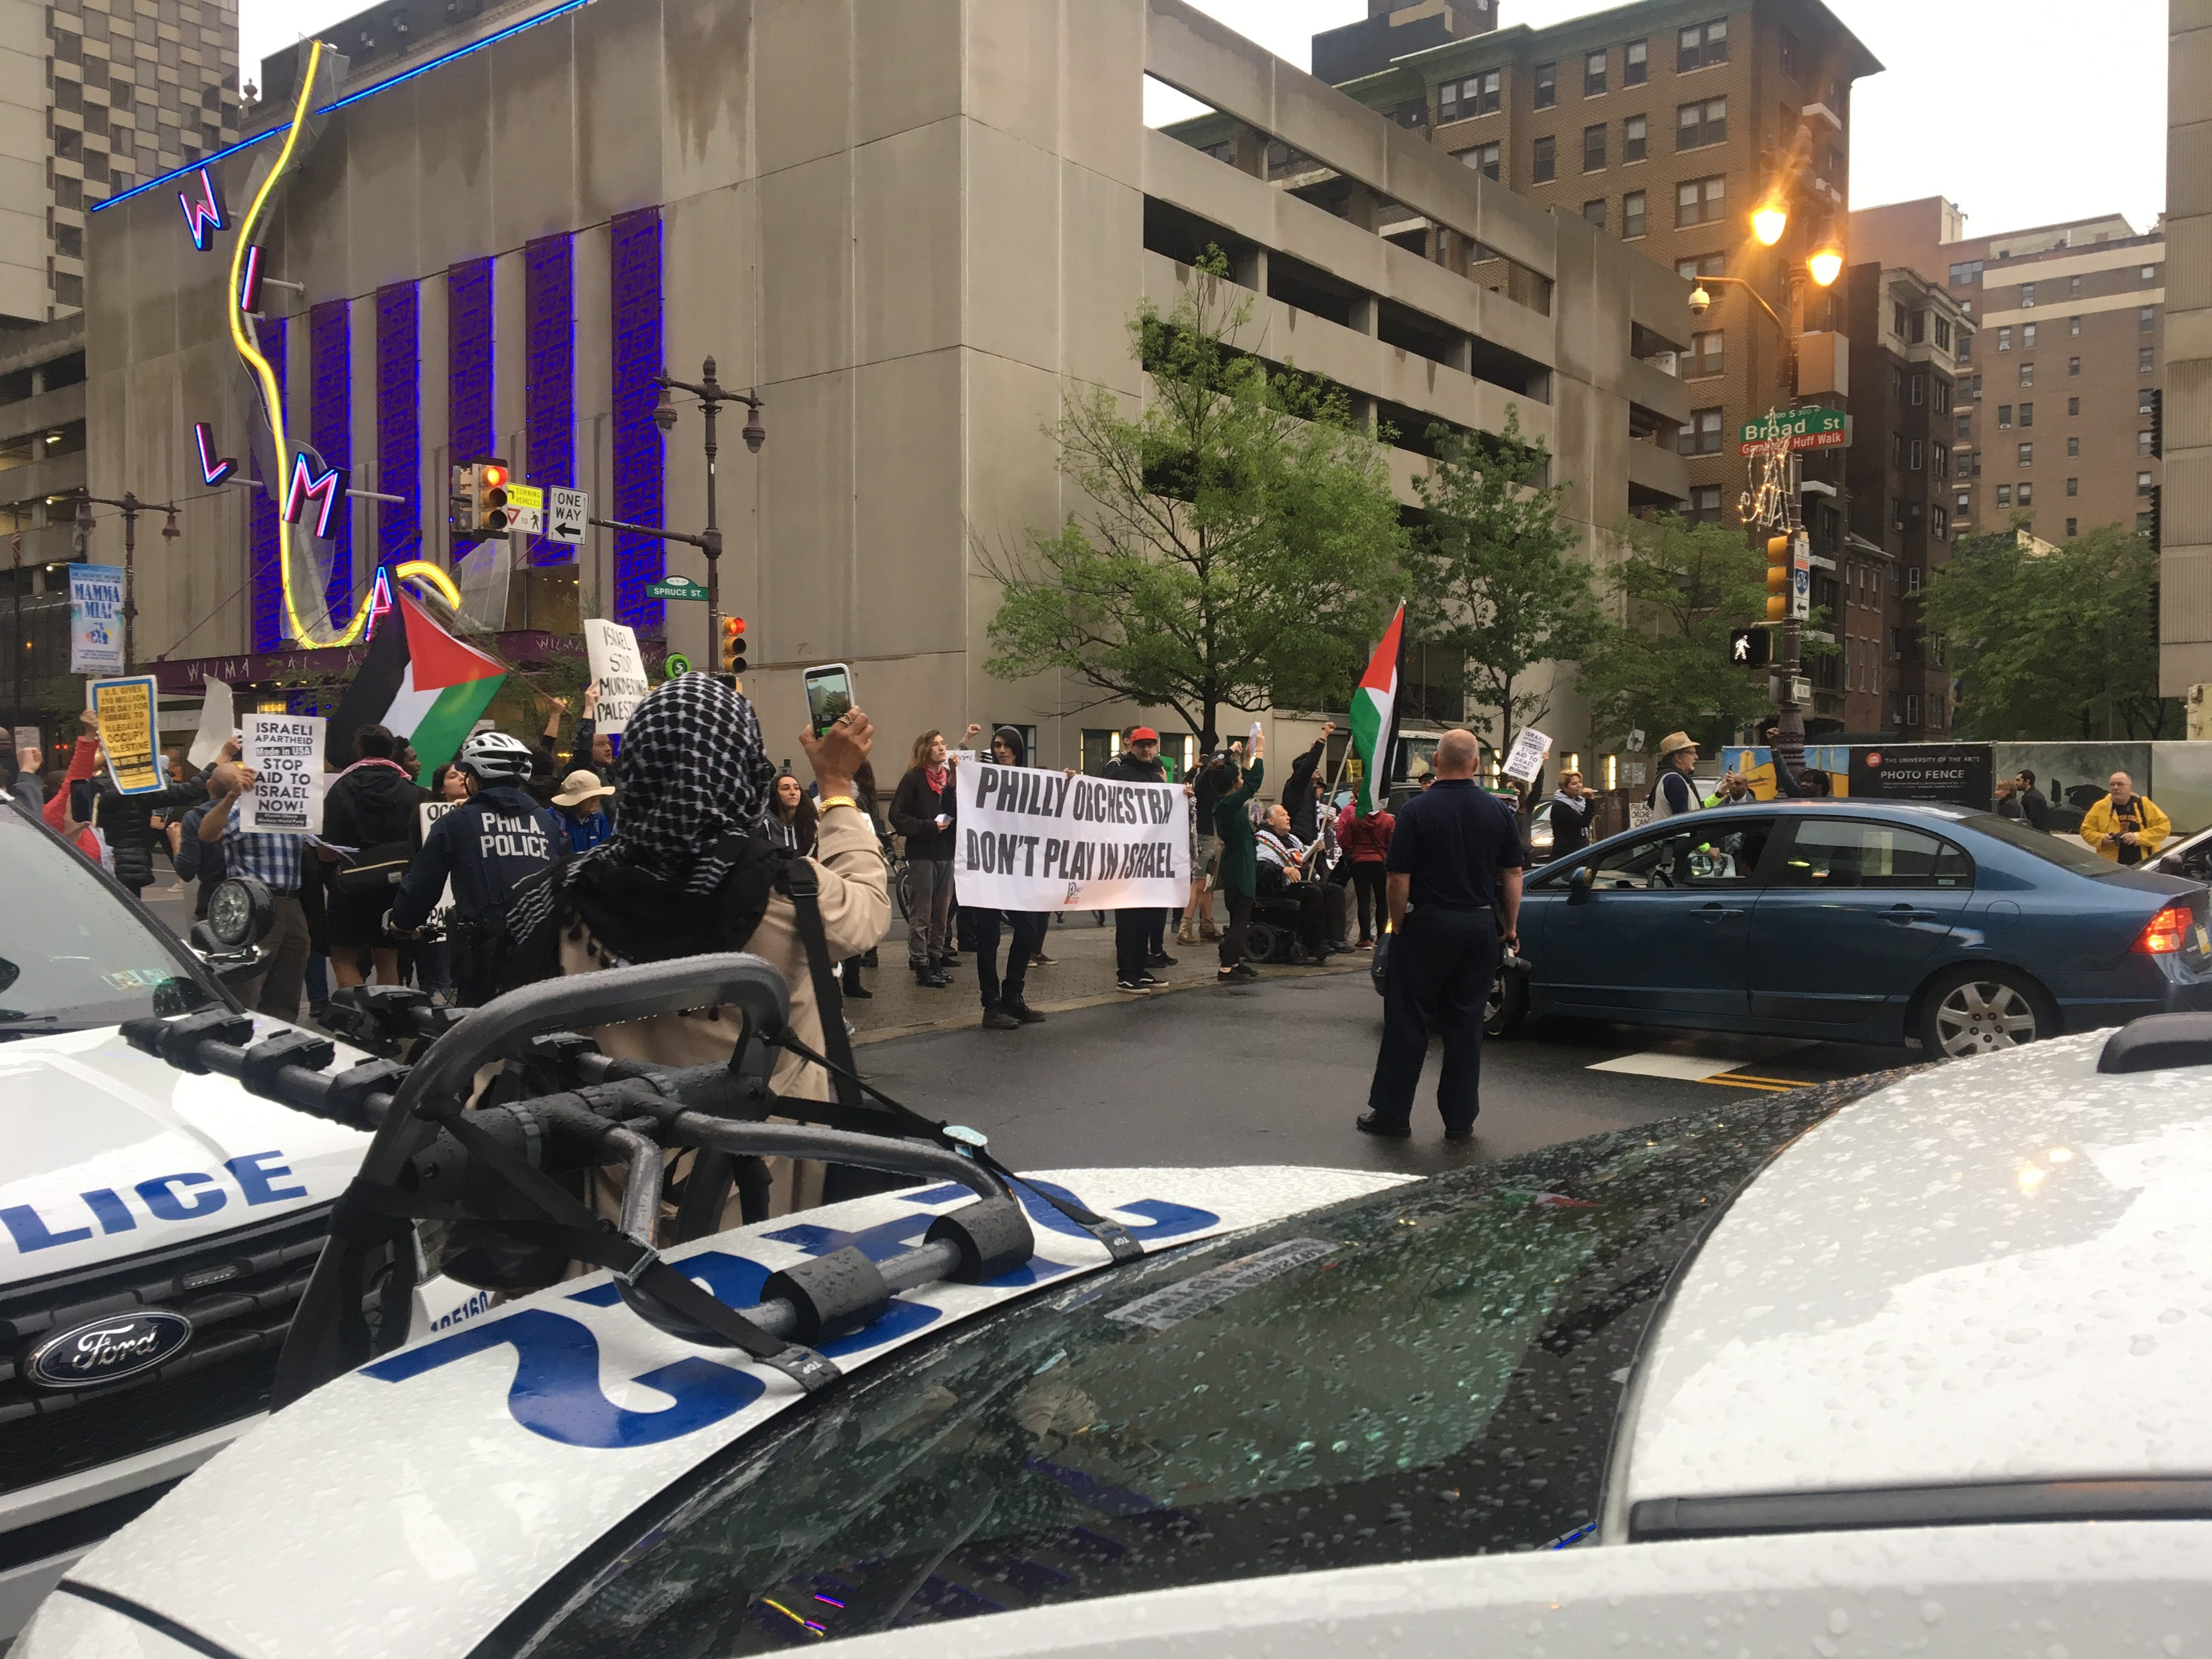 Roughly 60 pro-Palestinaian protesters showed up on Saturday, May 19, 2018, blocking Broad Street for five minutes. The protesters eventually moved to the southbound lane, where police directed traffic around them.